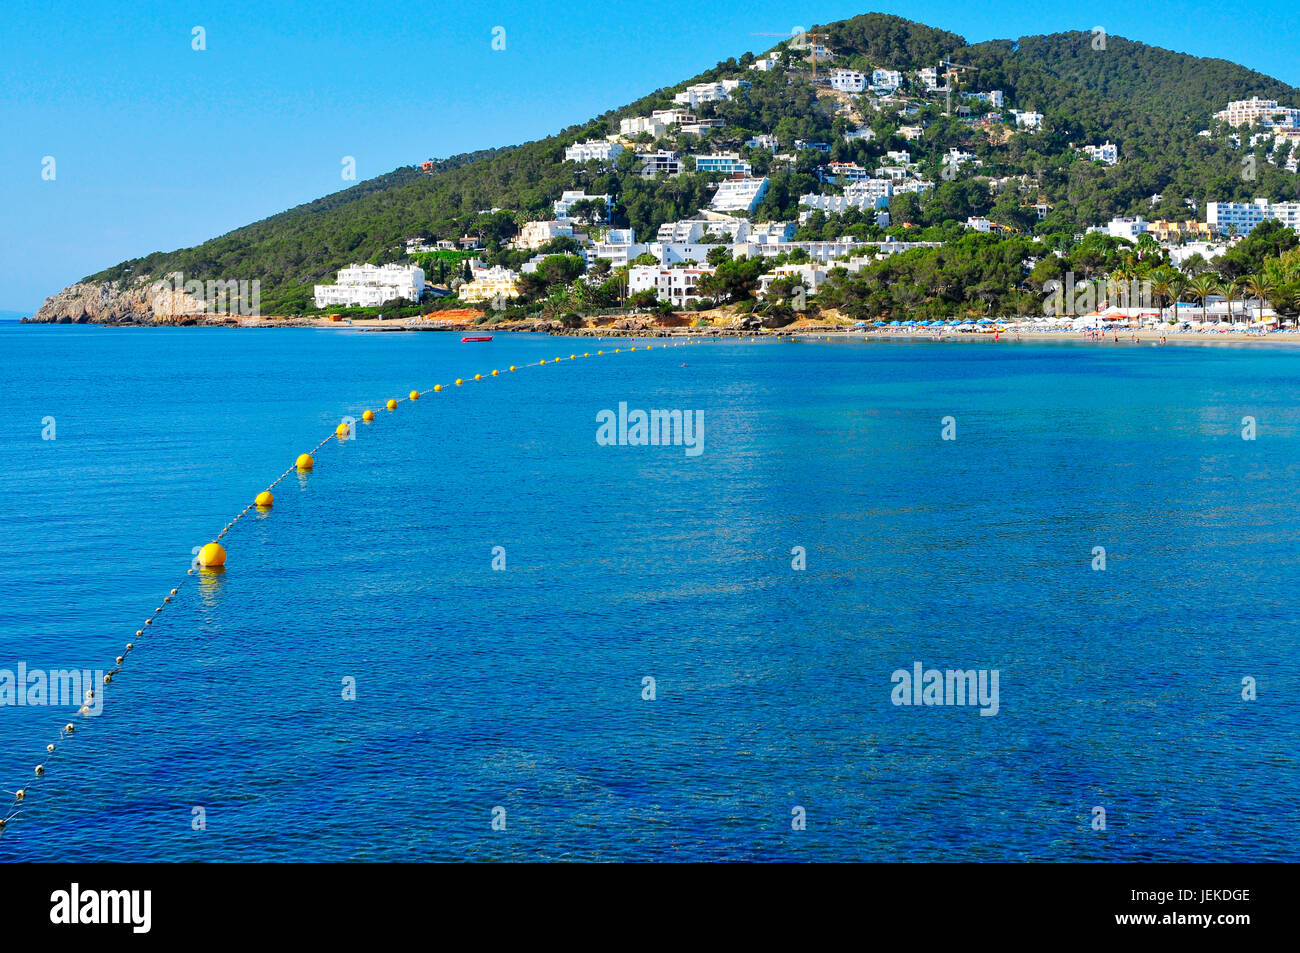 a panoramic view of the coastline and the Santa Eularia Beach in Santa Eularia des Riu, in Ibiza Island, Spain - Stock Image